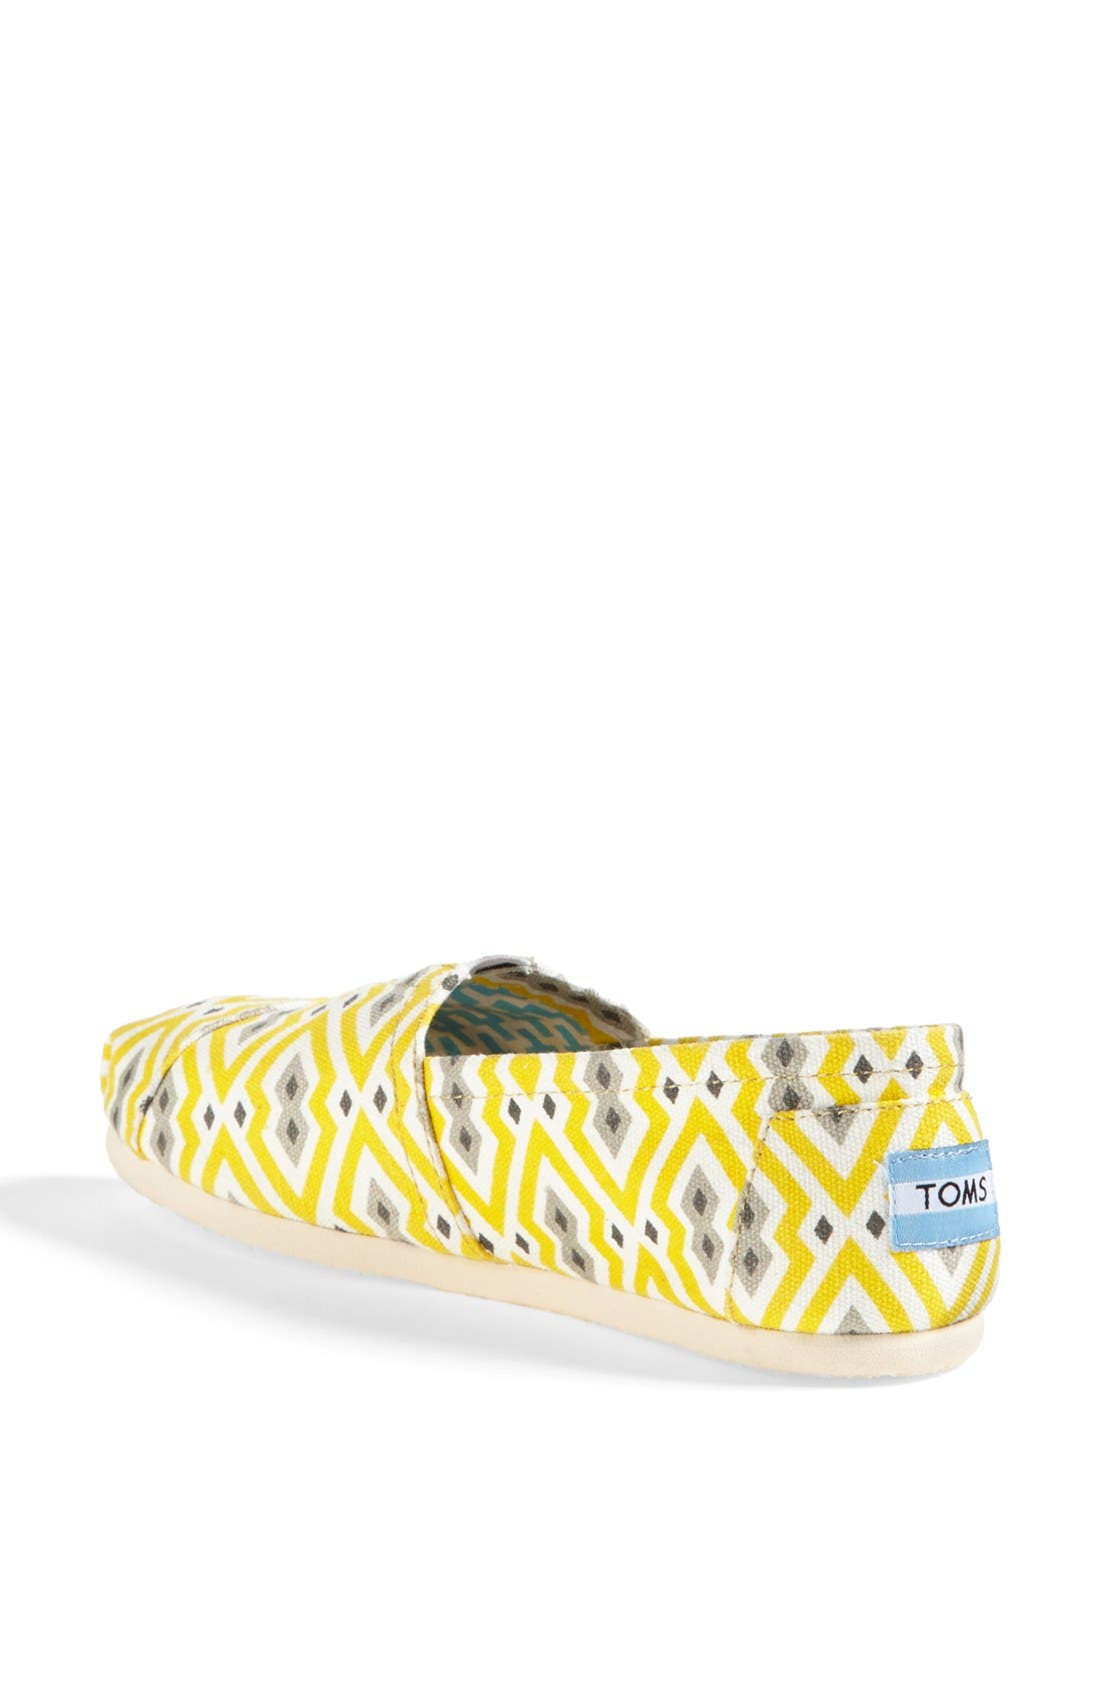 Alternate Image 2  - TOMS 'Classic - Jonathan Adler' Slip-On (Women)